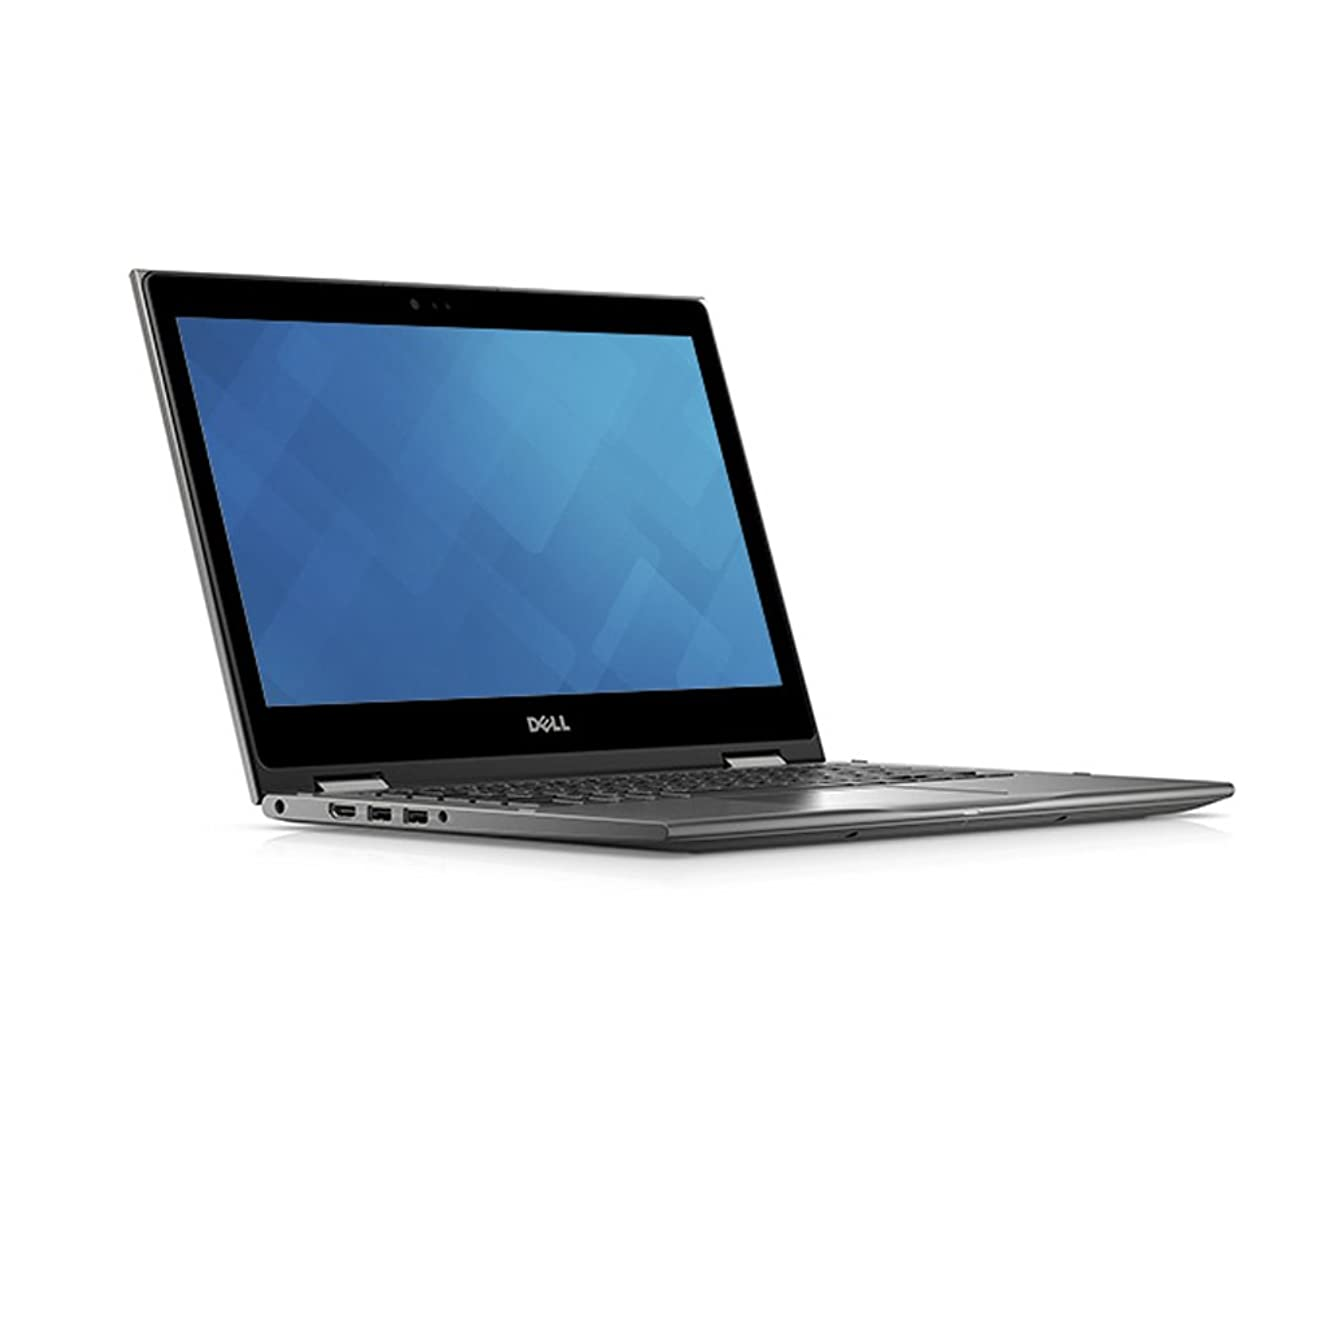 野望計器年齢Dell i5368-4071GRY 13.3 FHD 2-in-1 Laptop (Intel Core i5-6200U 2.3GHz Processor, 4 GB RAM, 128 GB SDD, Windows 10) Gray by Dell